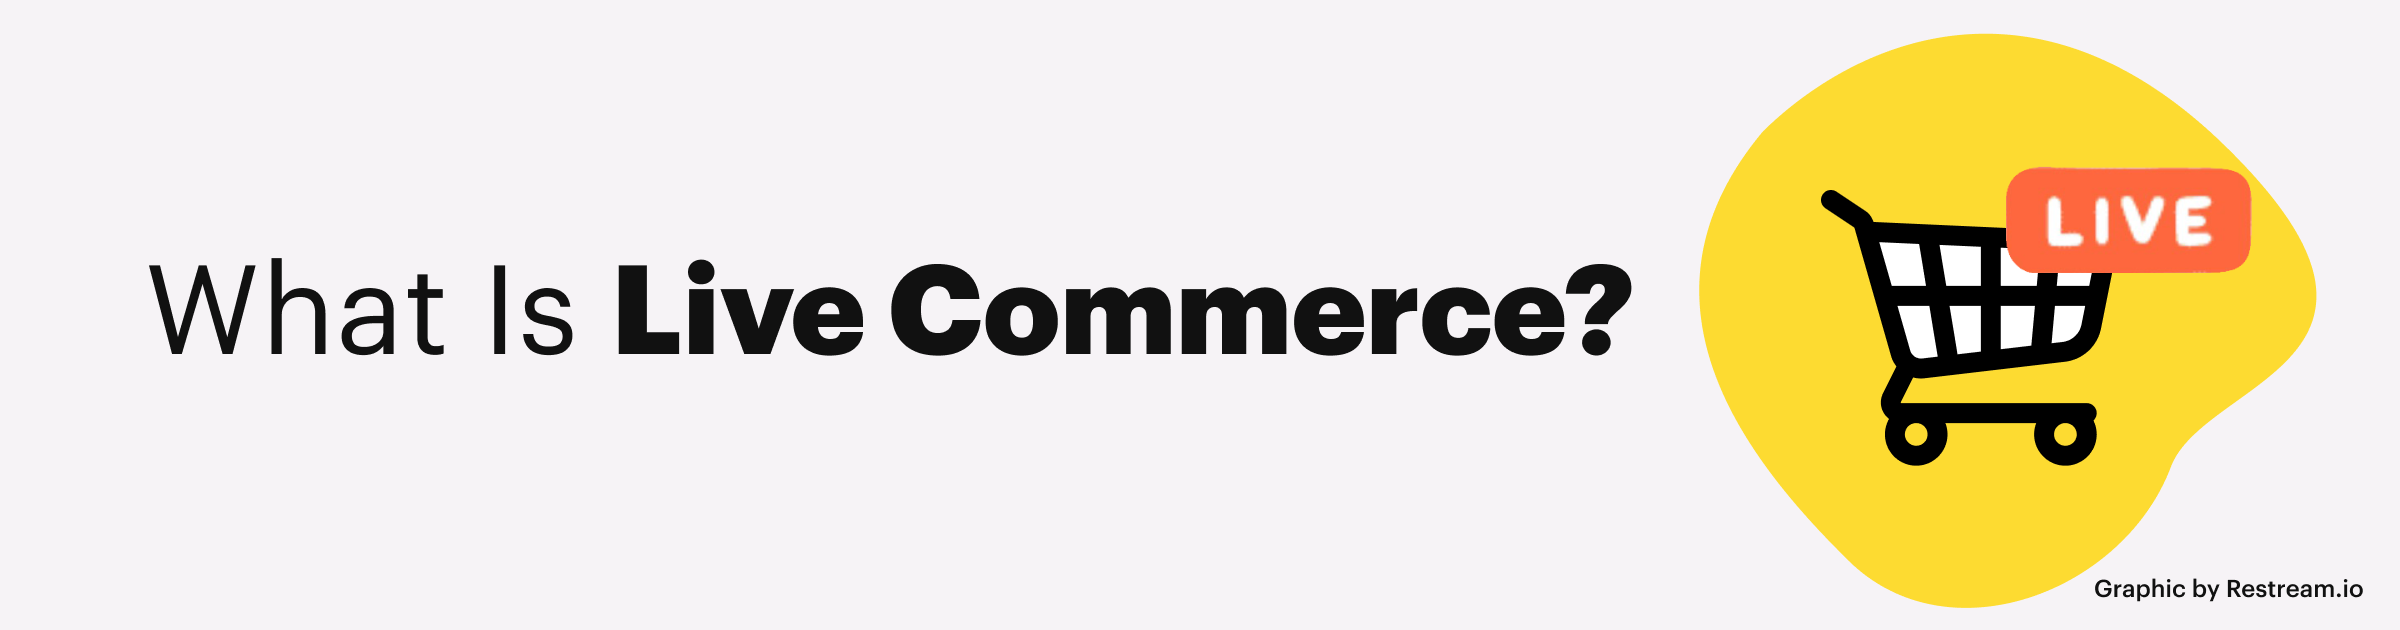 What Is Live Commerce?